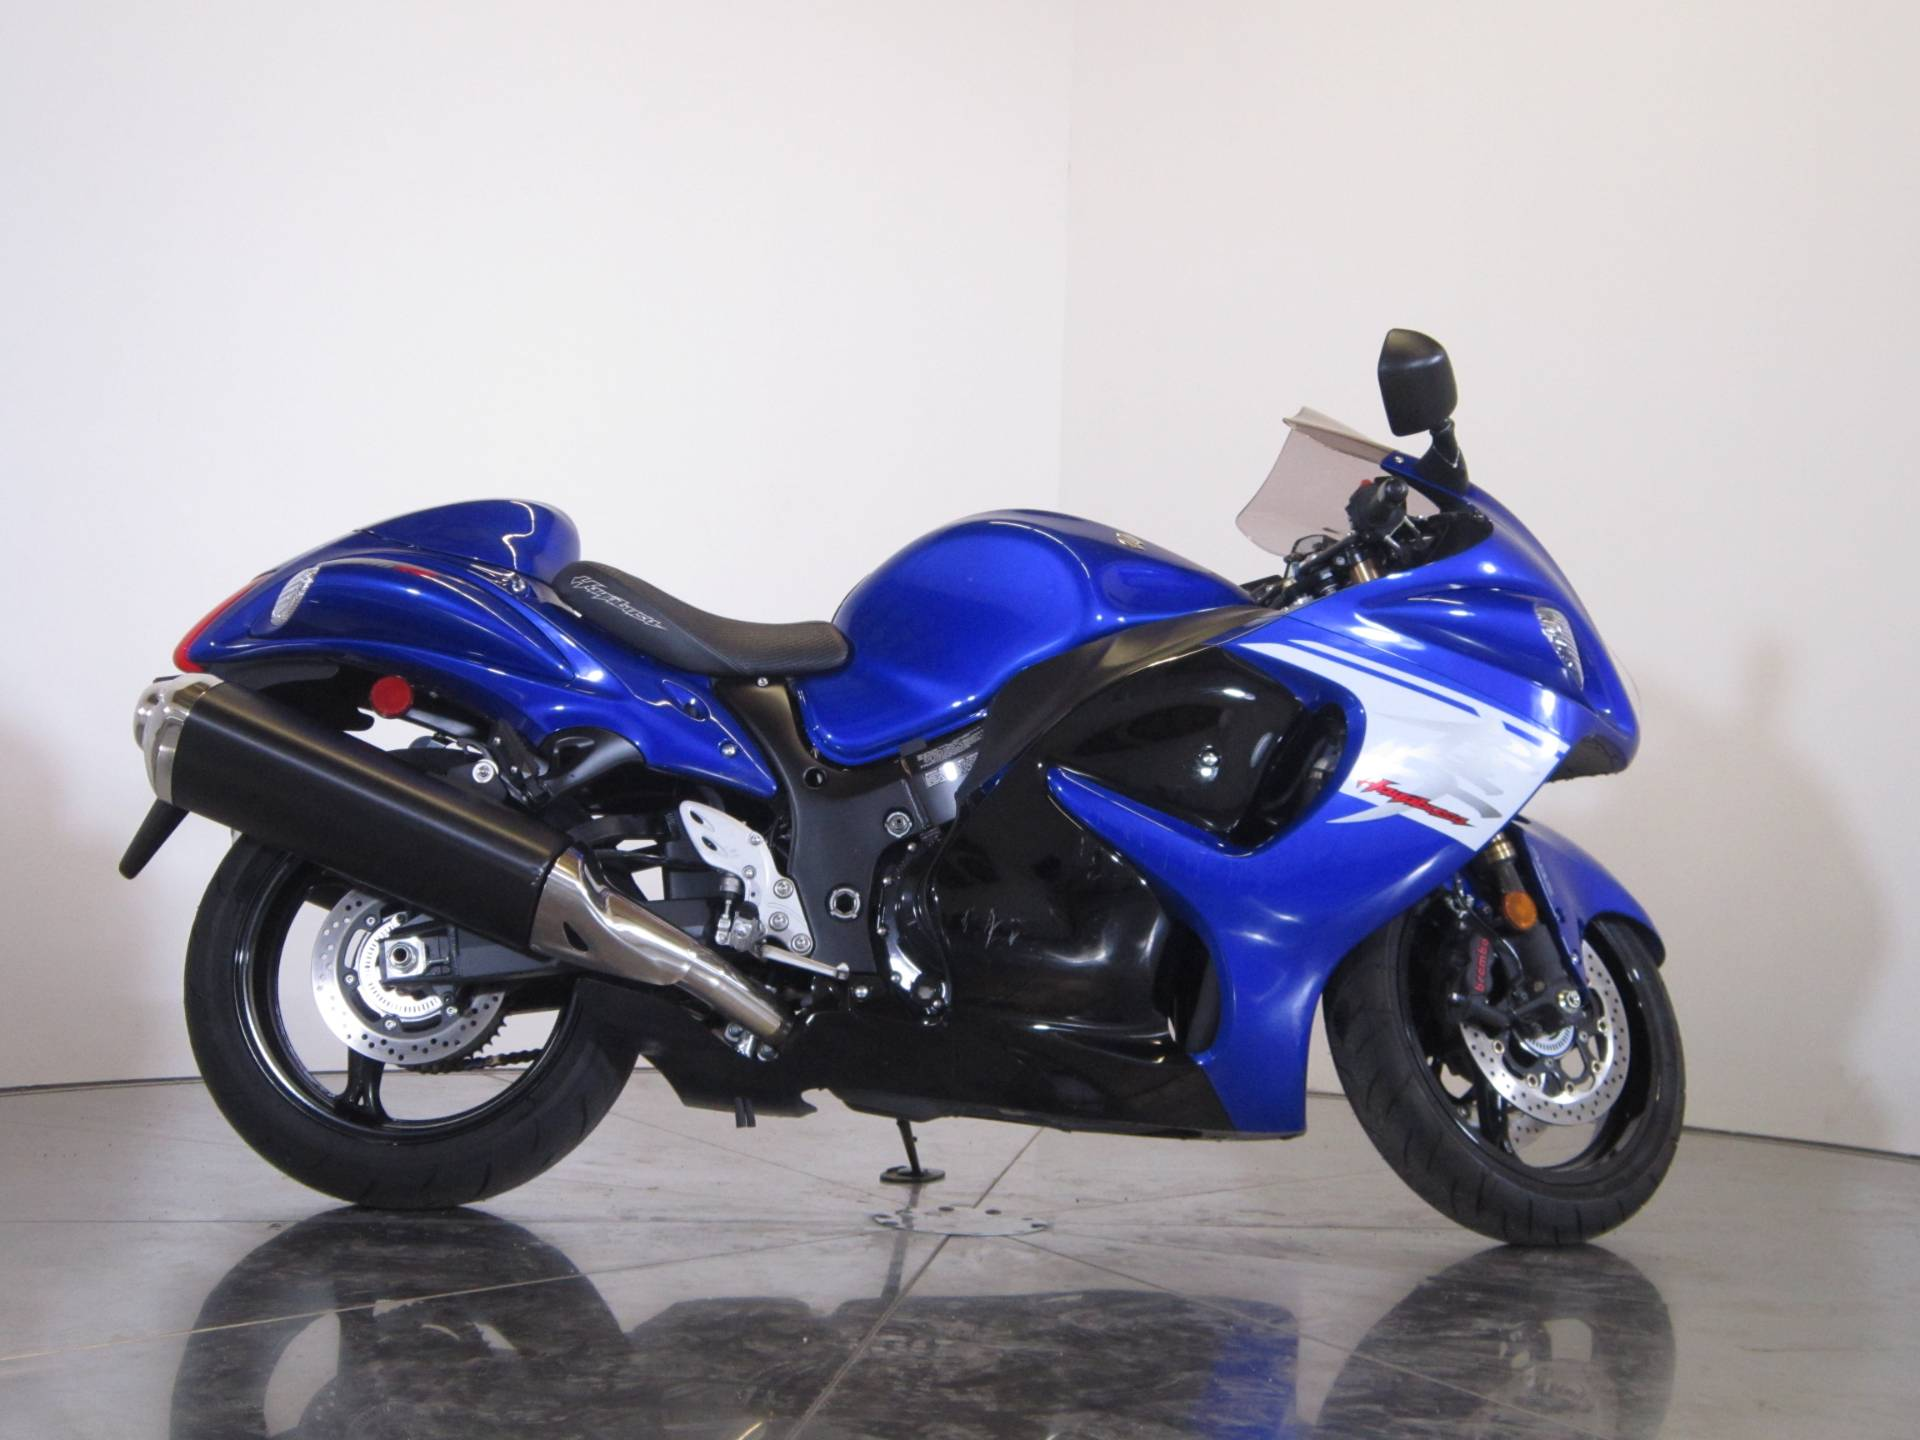 2017 Suzuki Hayabusa for sale 47029